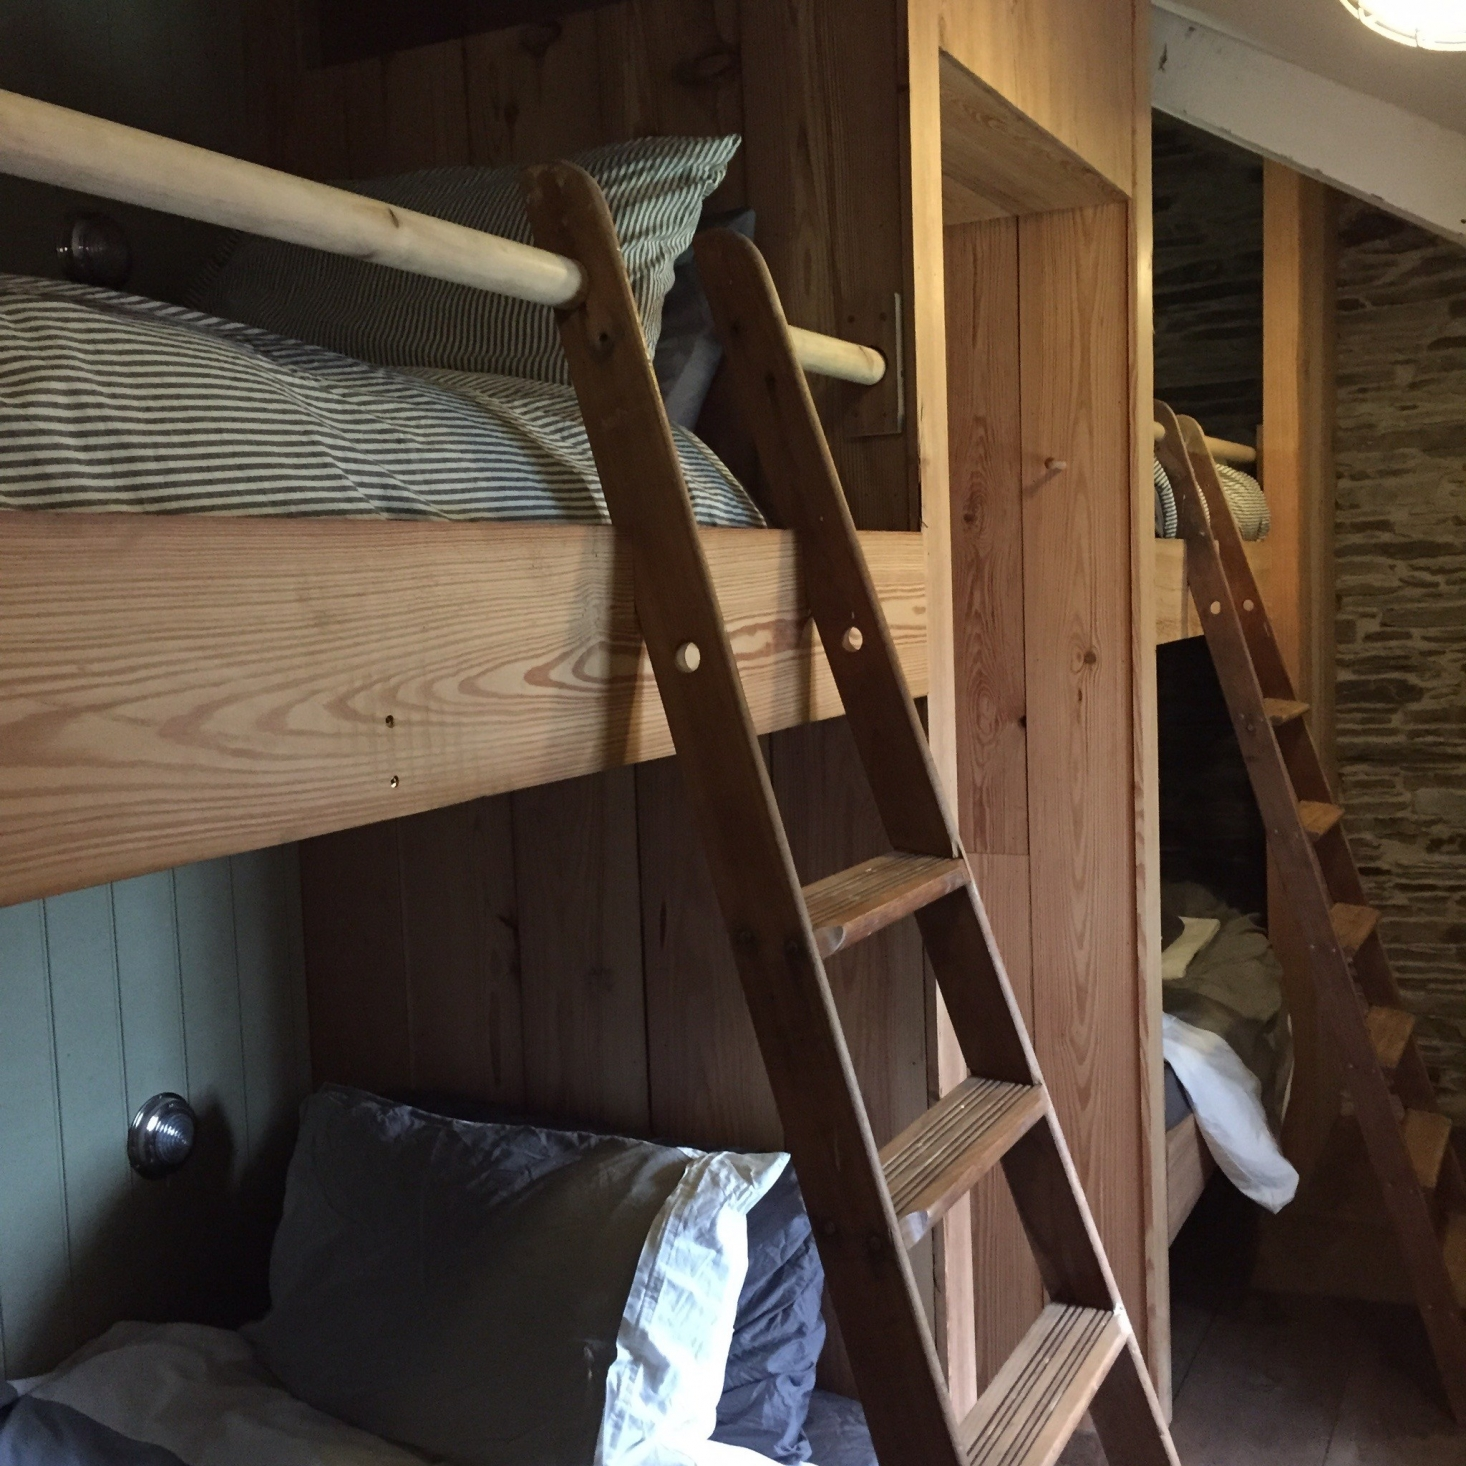 fforest-wales-vacation-rental-ty-forest-bunks-1466x1466.jpg